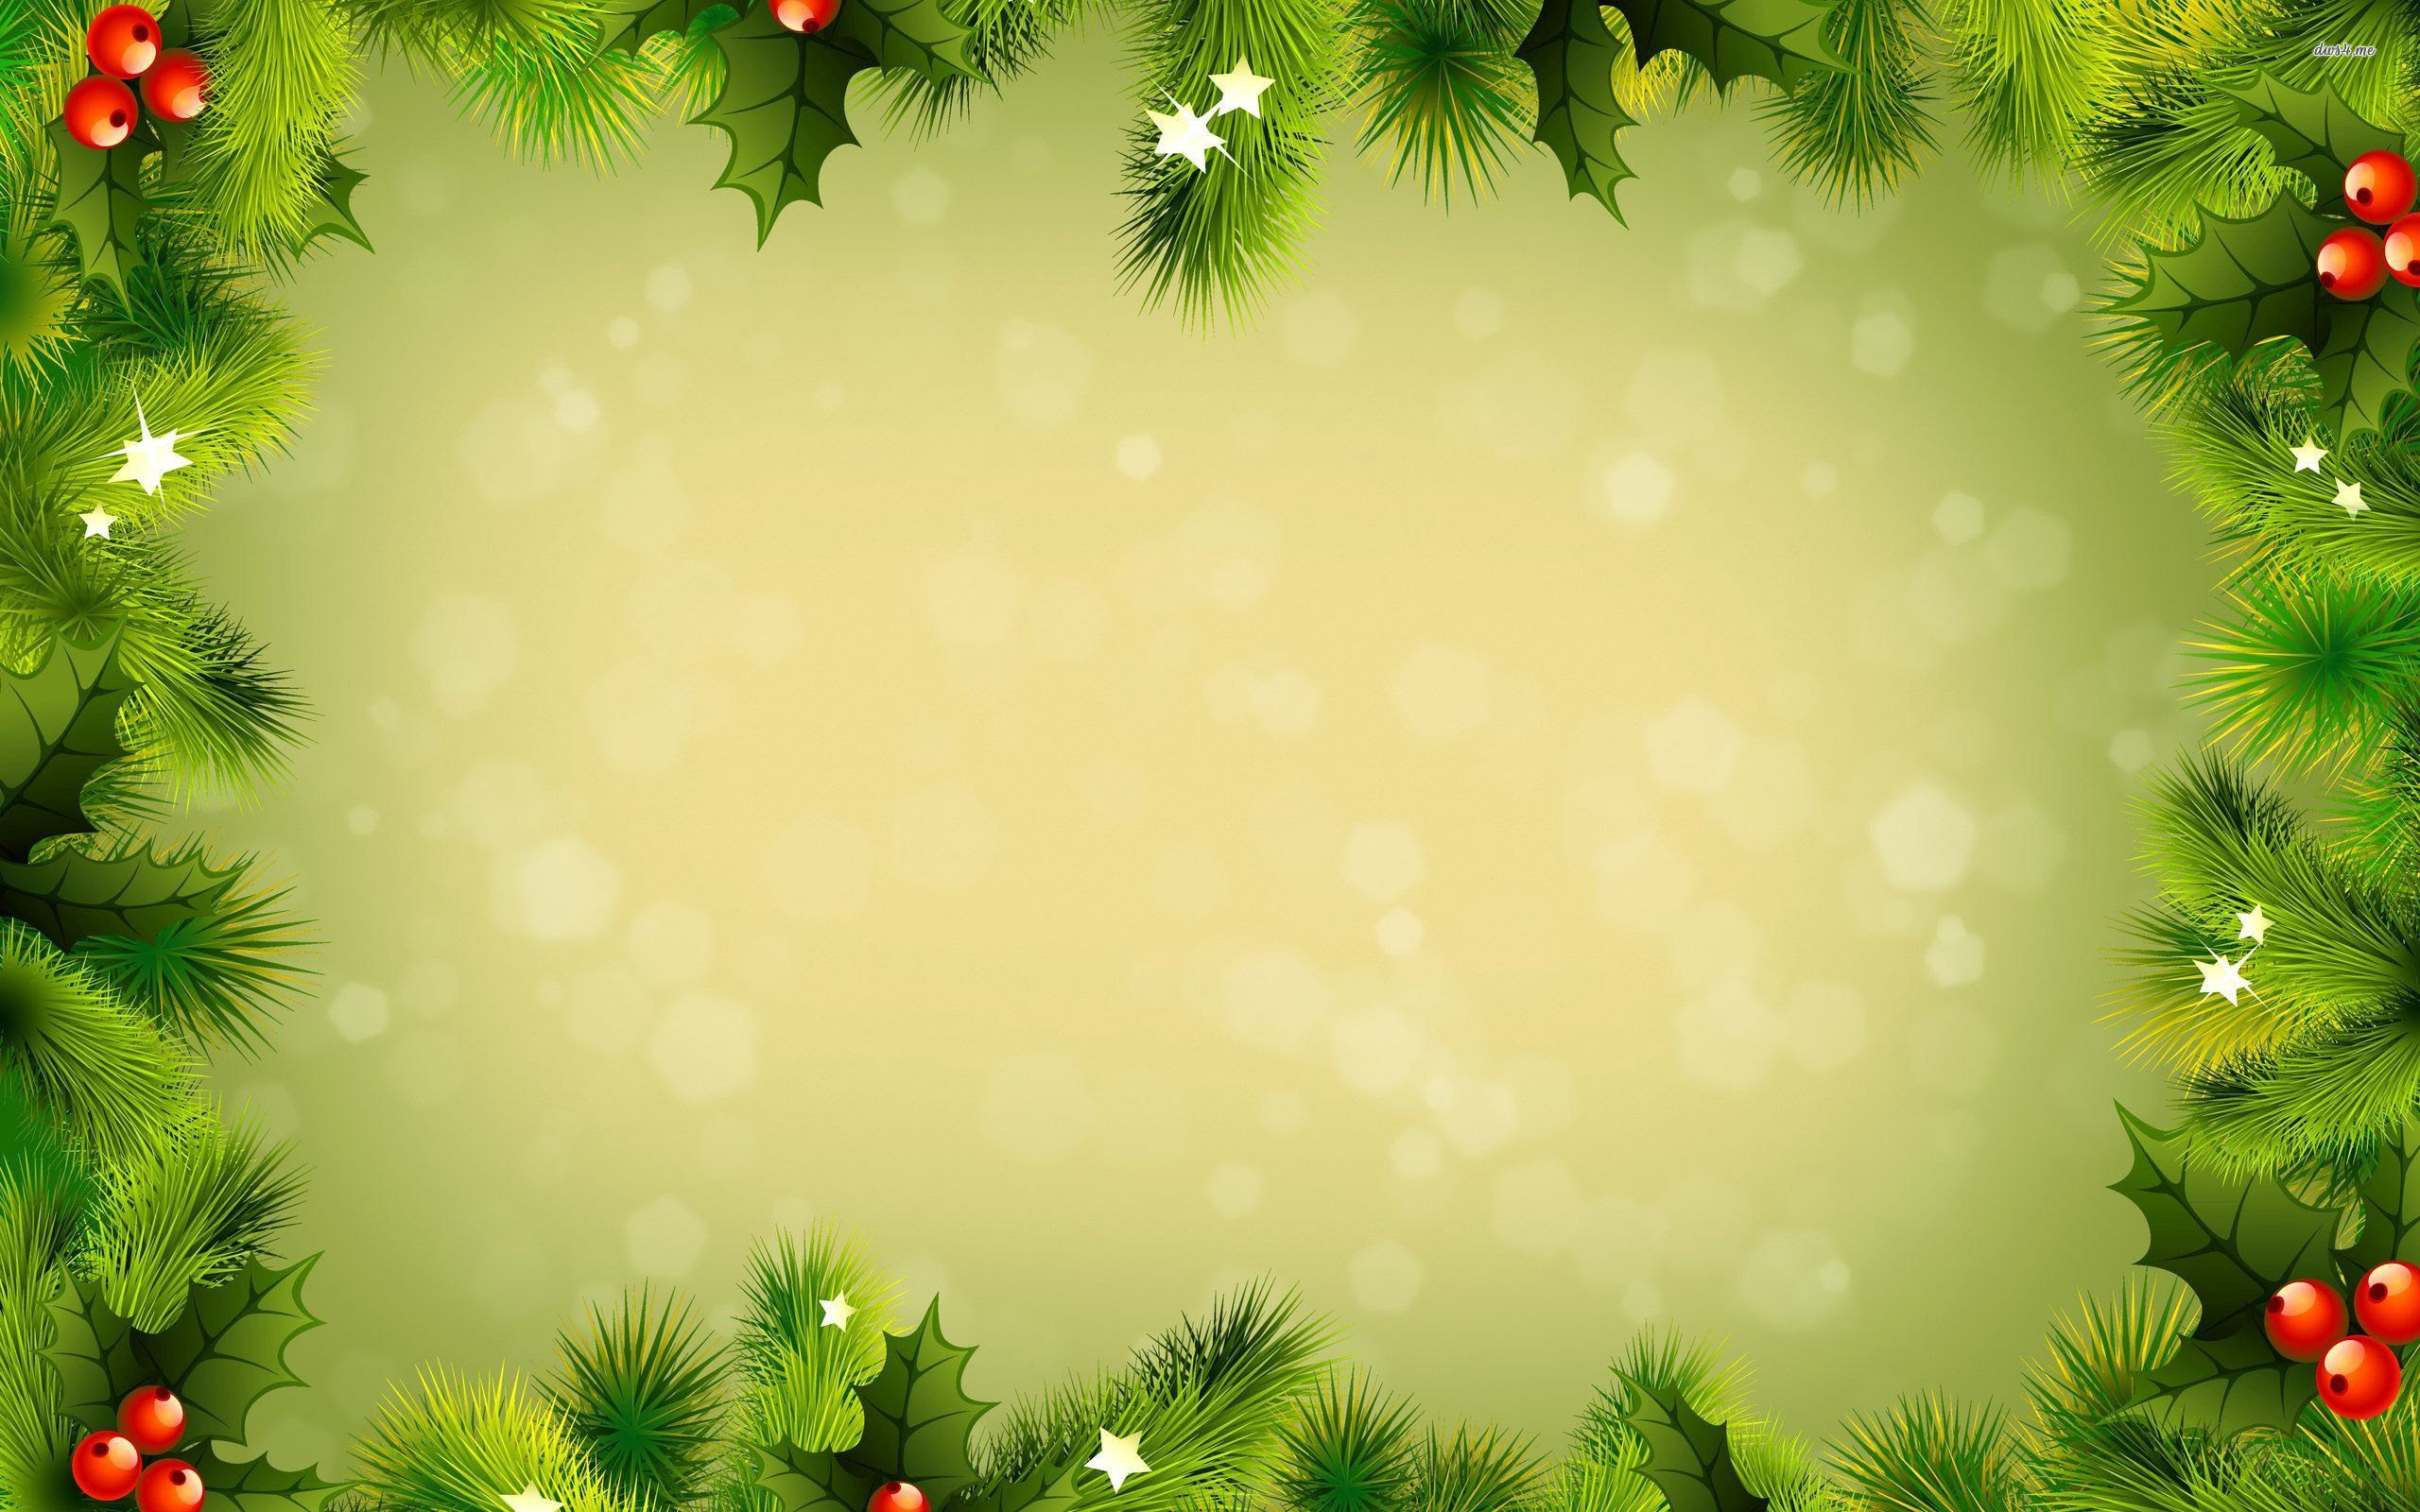 Christmas Wall Paper.11 Awesome And Best Christmas Wallpapers For Your Gadgets